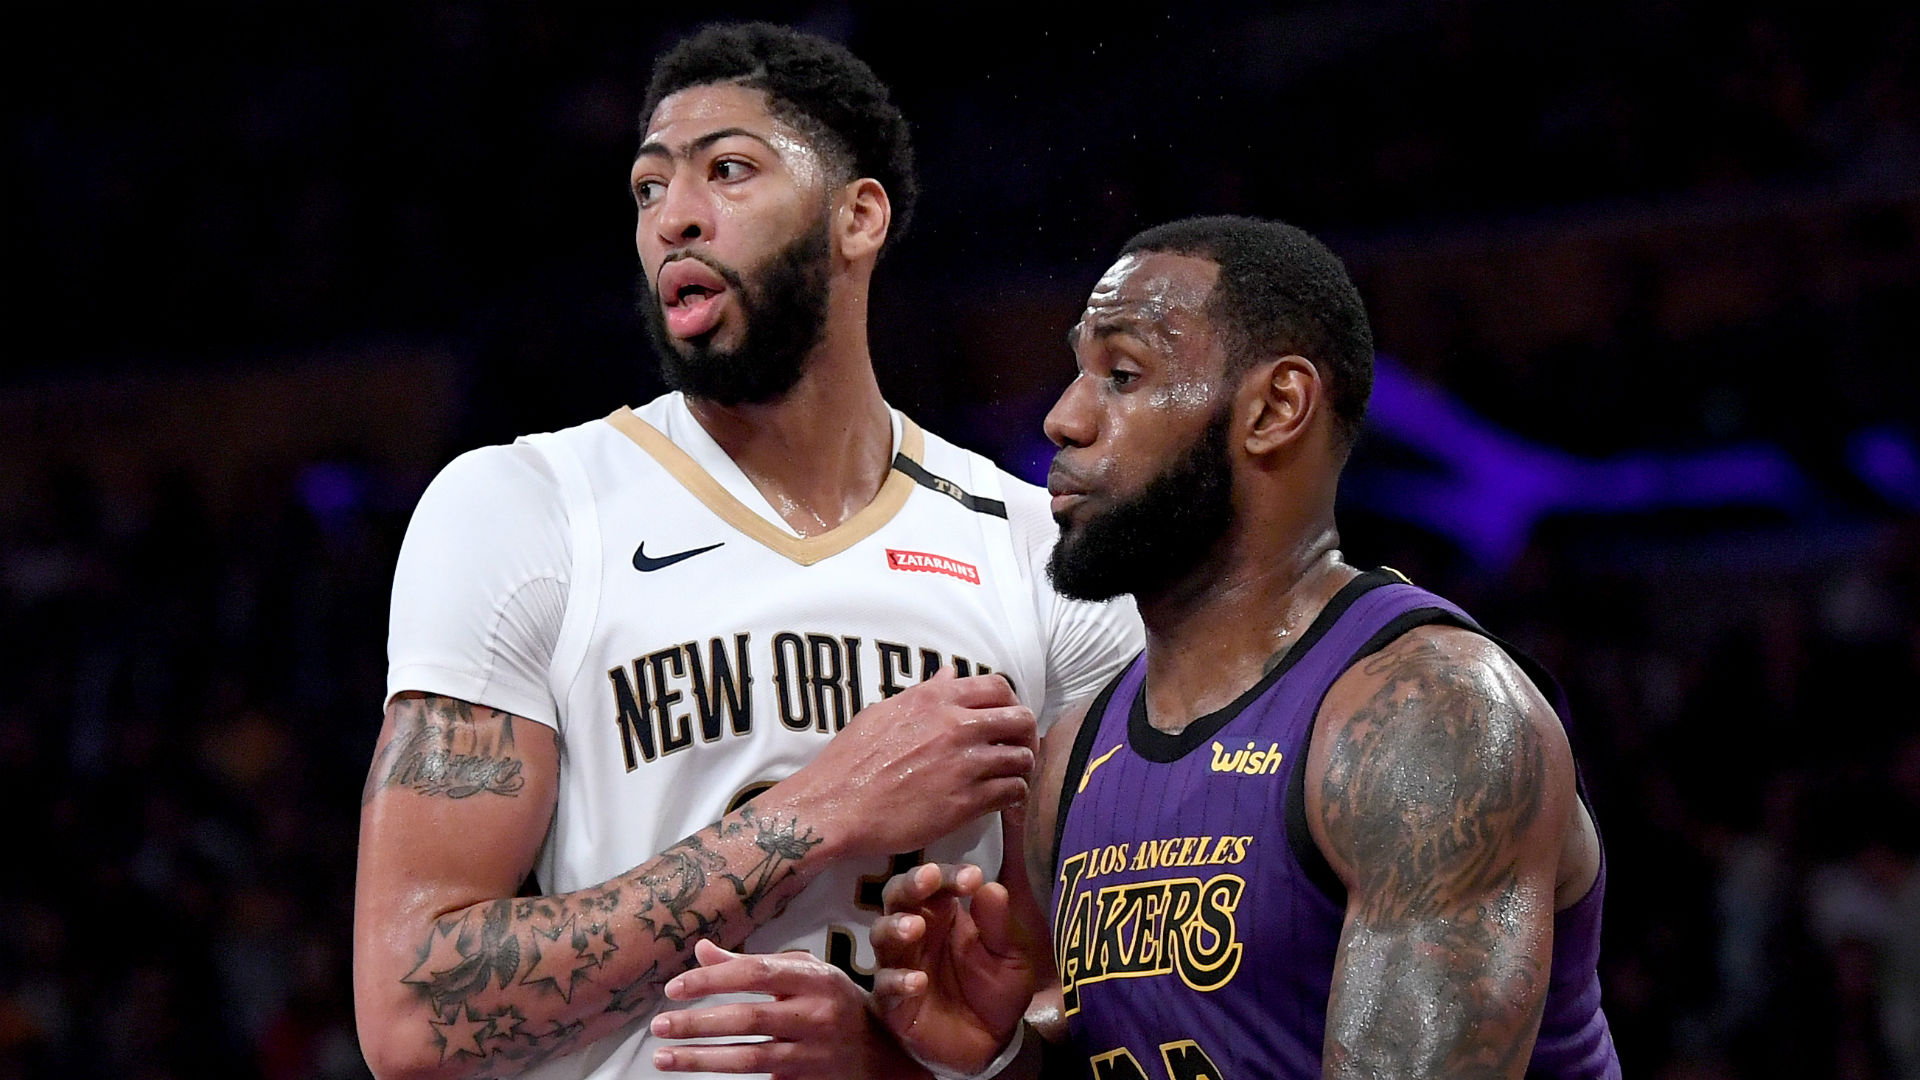 Lakers superstar LeBron James is ready to play with Anthony Davis in Los Angeles.